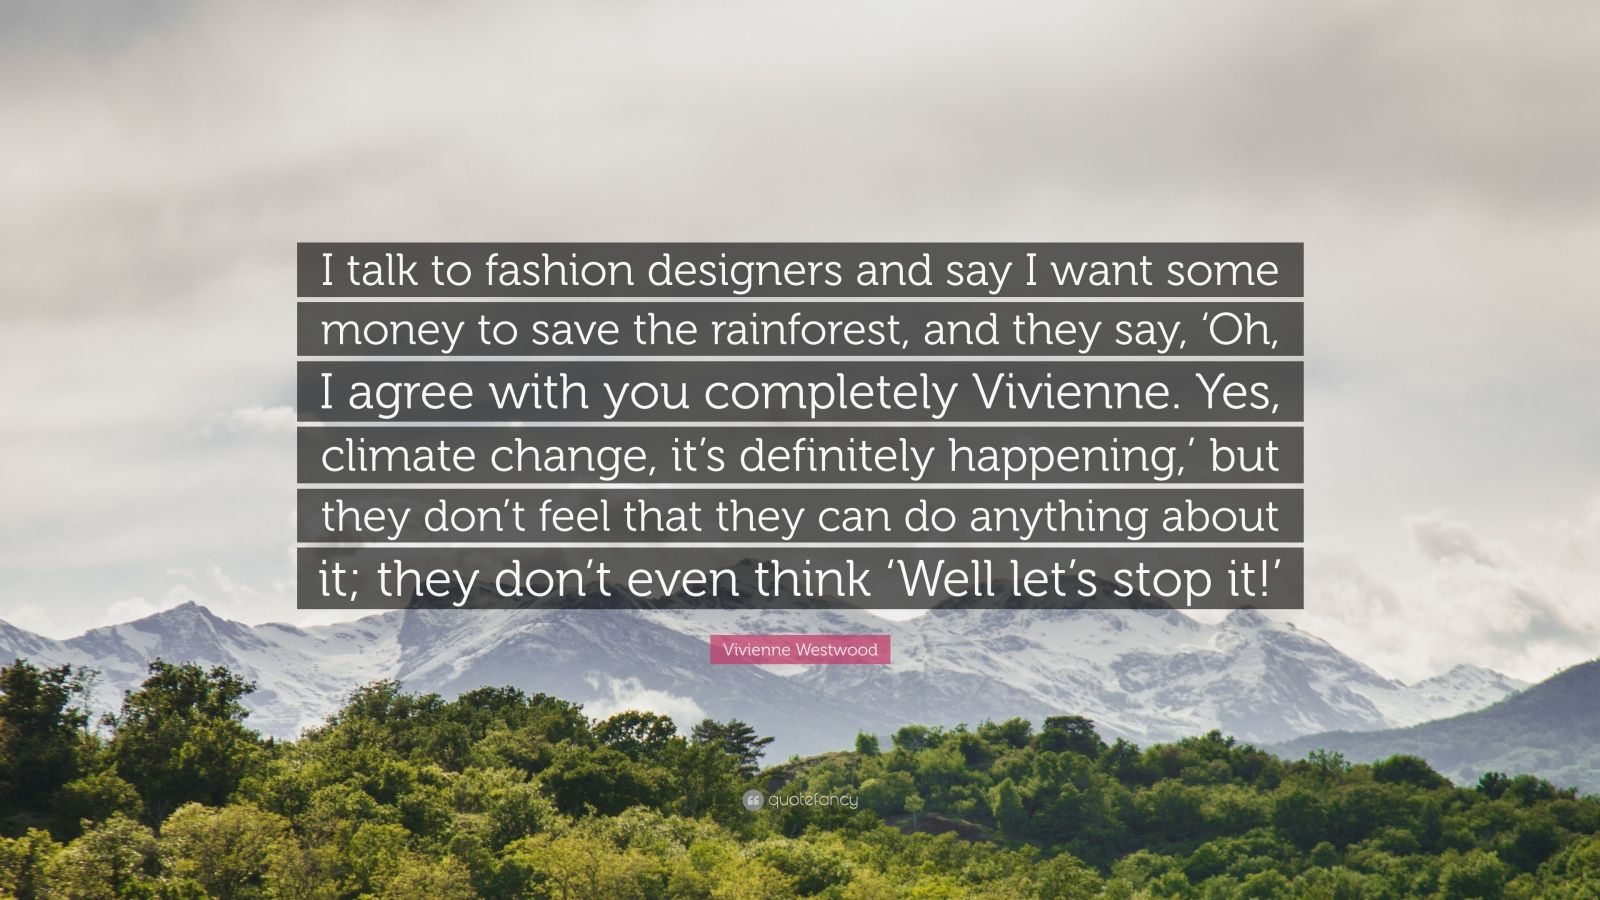 "Vivienne Westwood Quote: ""I talk to fashion designers and say I want some money to save the rainforest, and they say, 'Oh, I agree with you completely Vivienne. Yes, climate change, it's definitely happening,' but they don't feel that they can do anything about it; they don't even think 'Well let's stop it!'"""